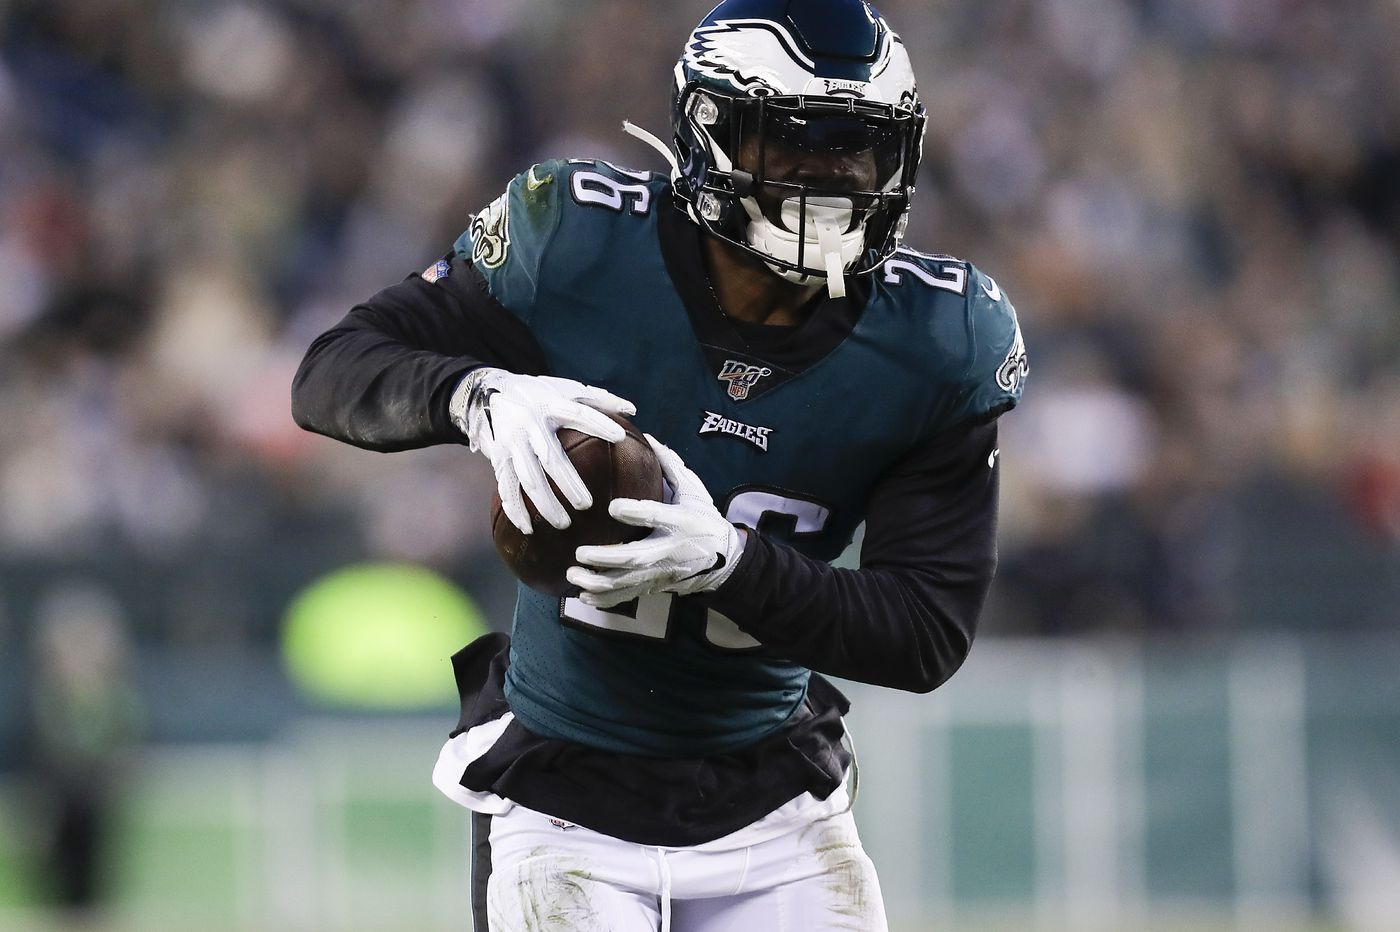 Eagles injury report: Miles Sanders in playoff mode, will play against Seahawks; Zach Ertz questionable